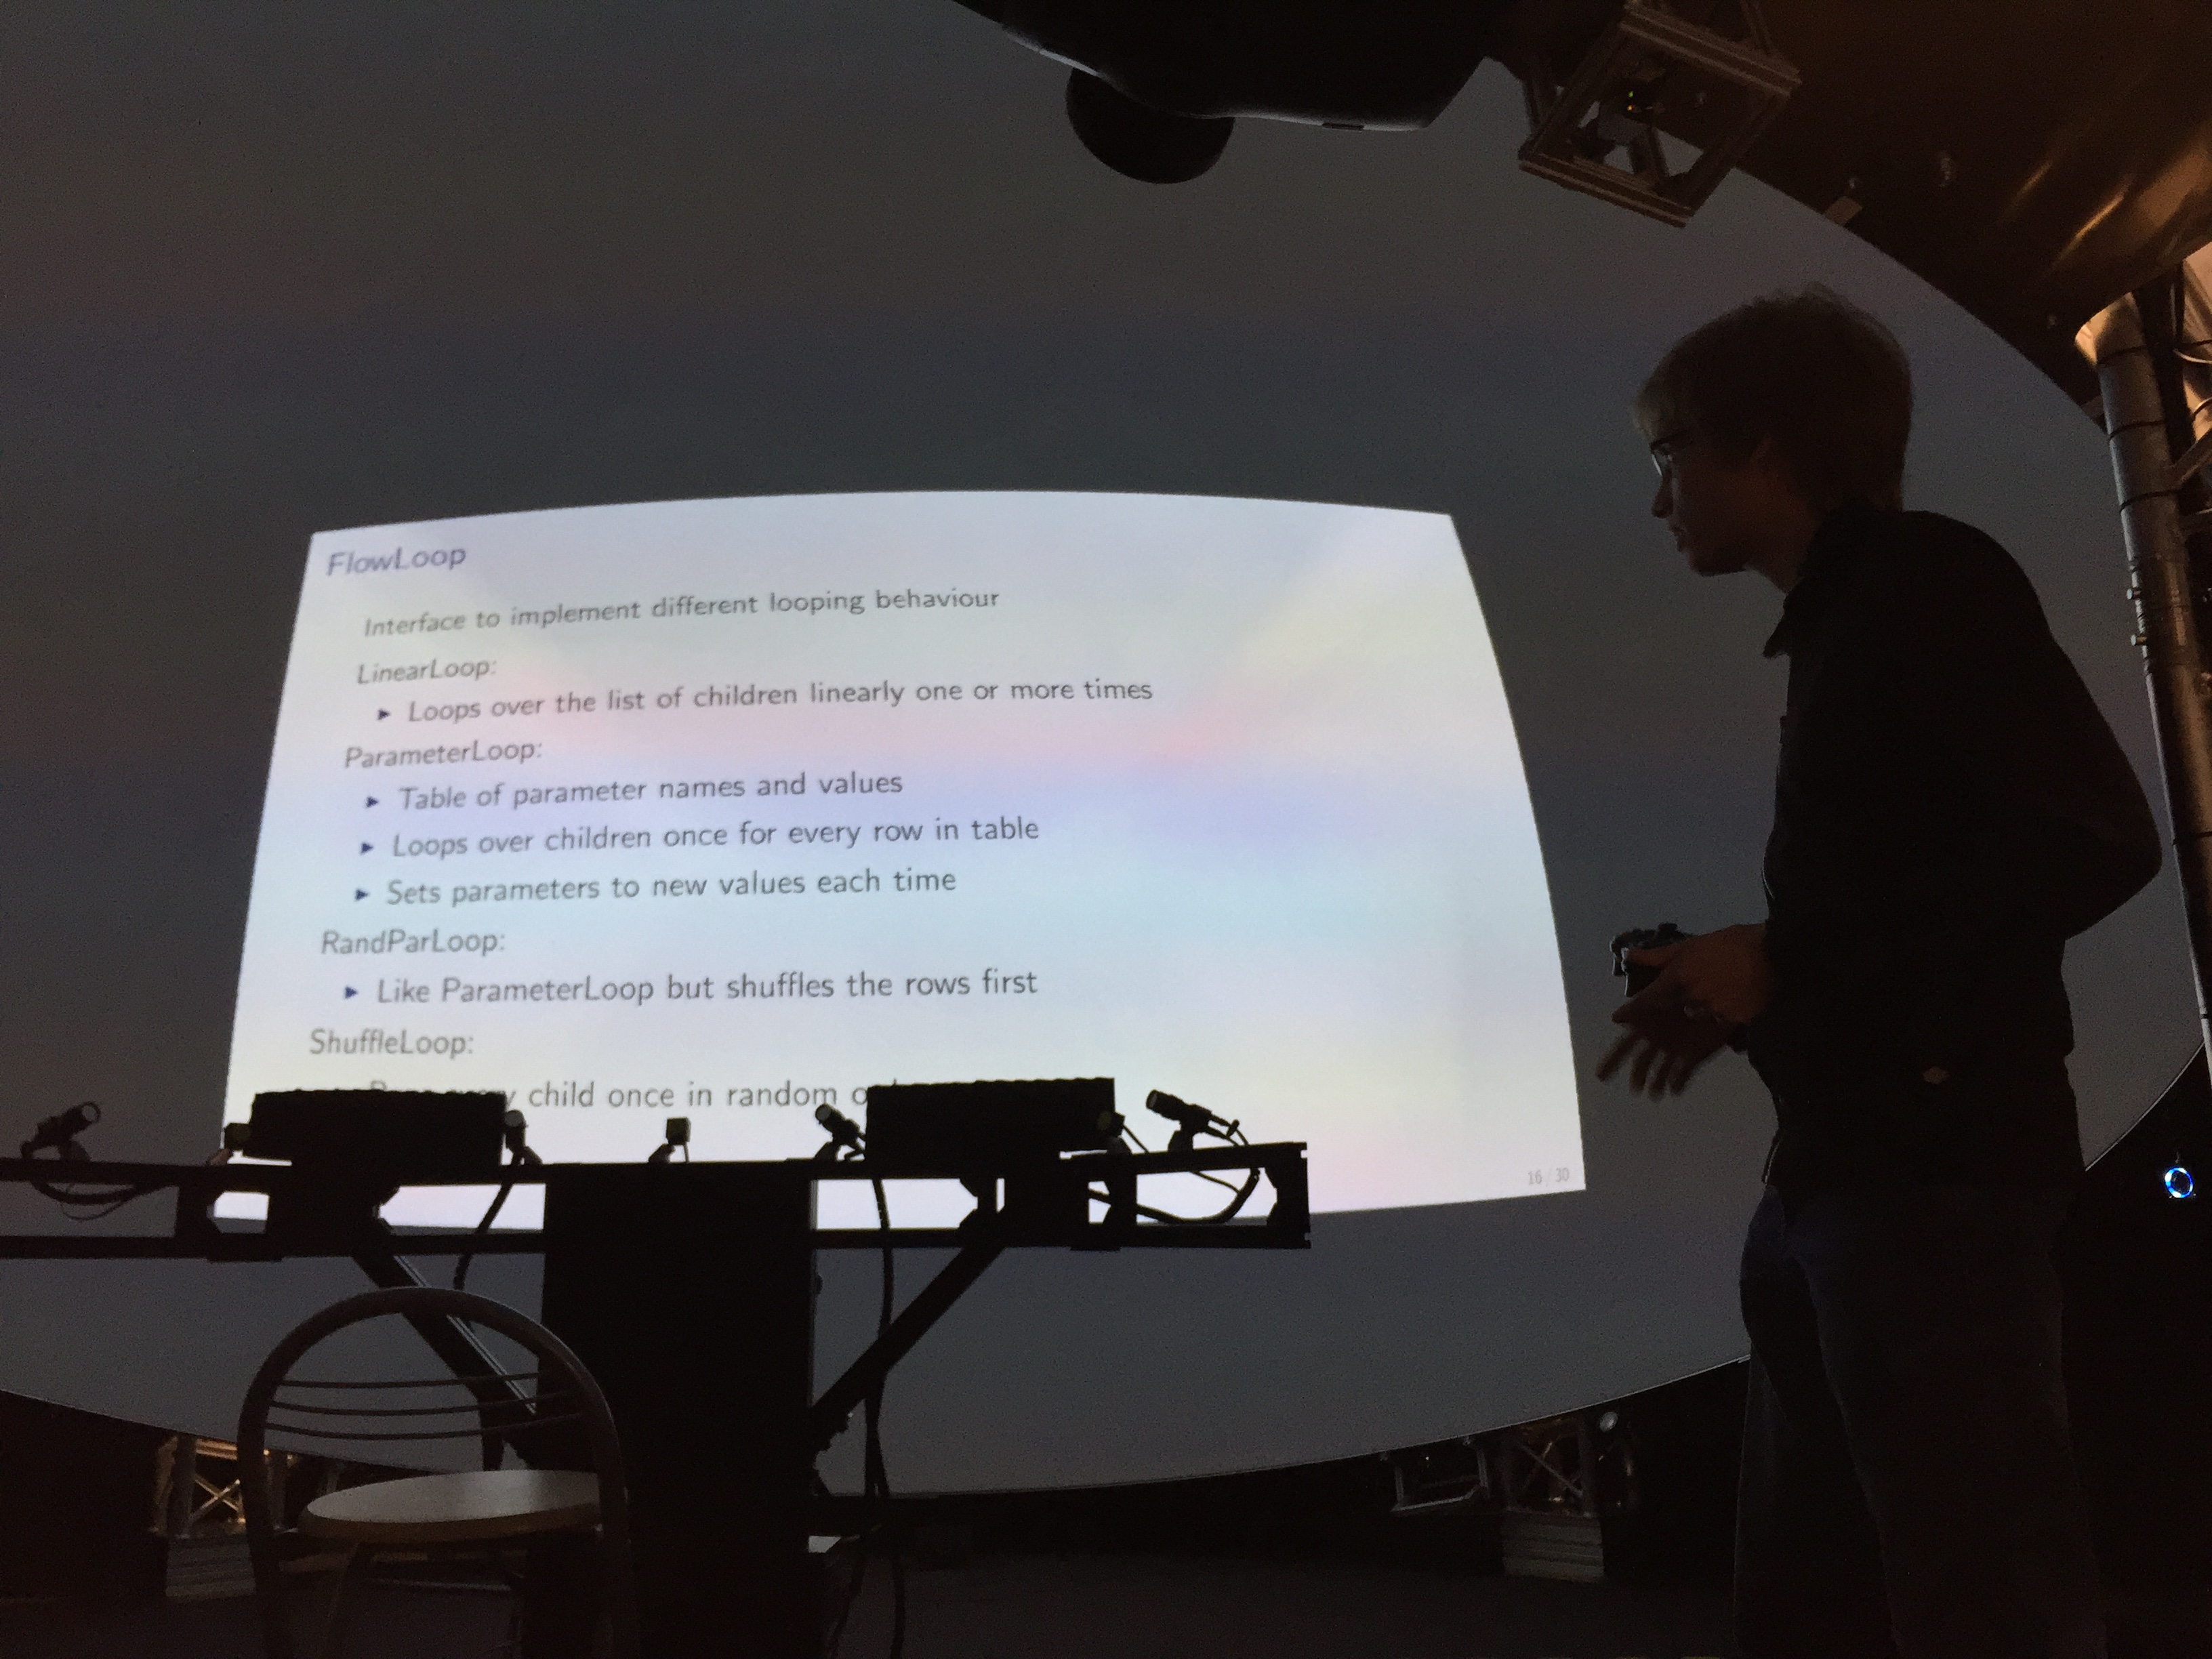 Bsc Talk: A framework for psychophysical experiment design in immersive full-dome environments